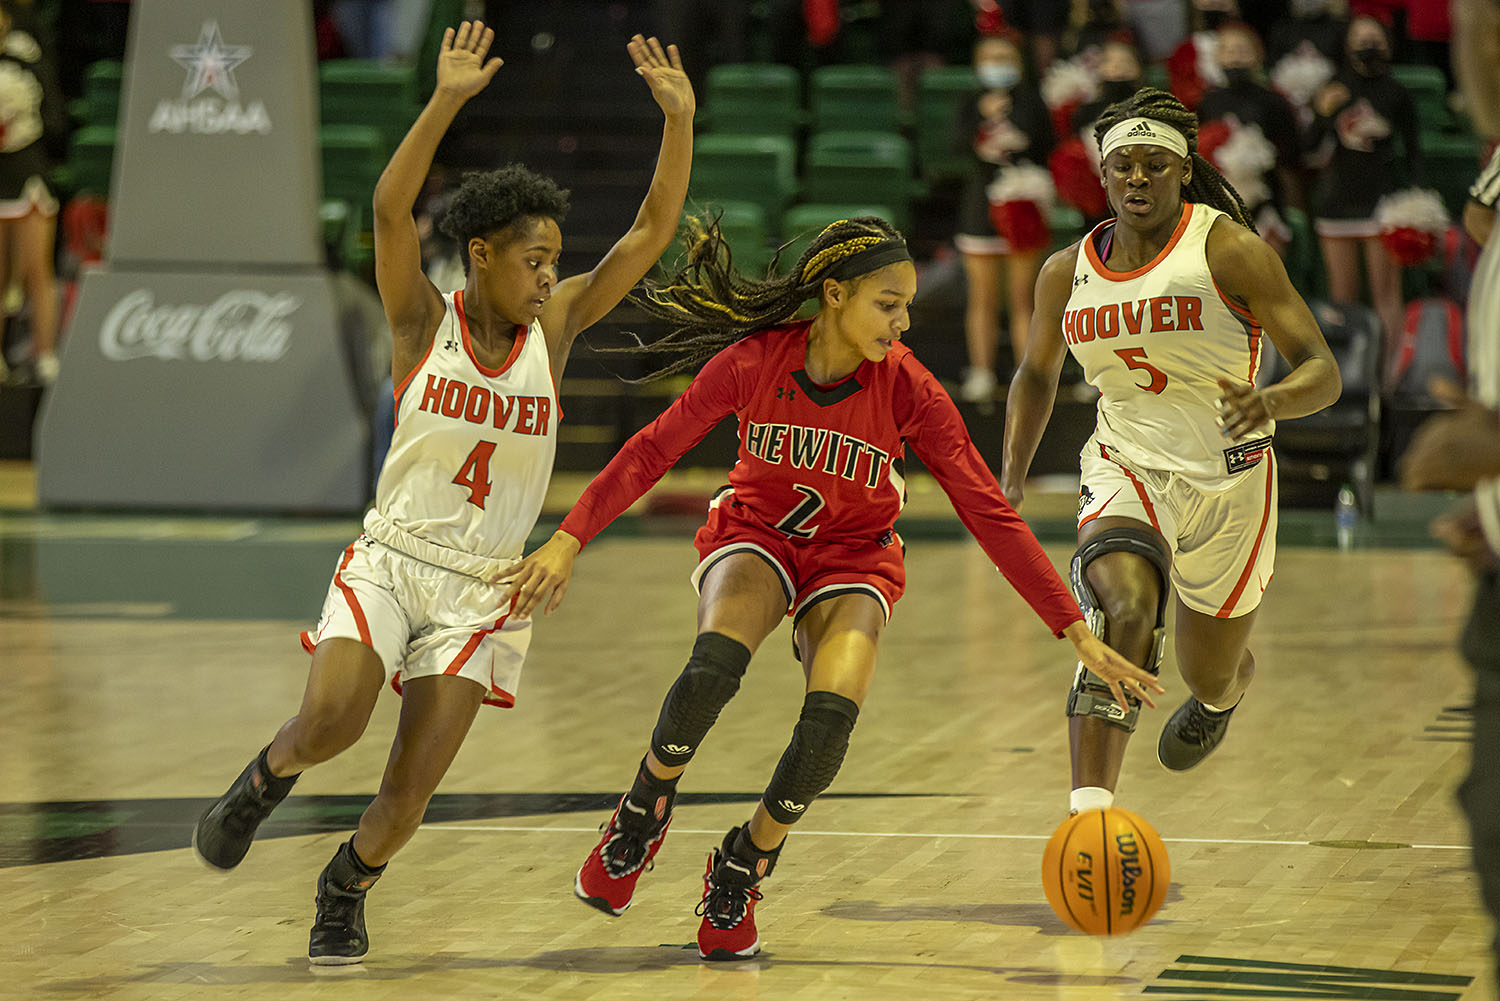 Big 2nd half lifts Hoover past Hewitt in state championship game